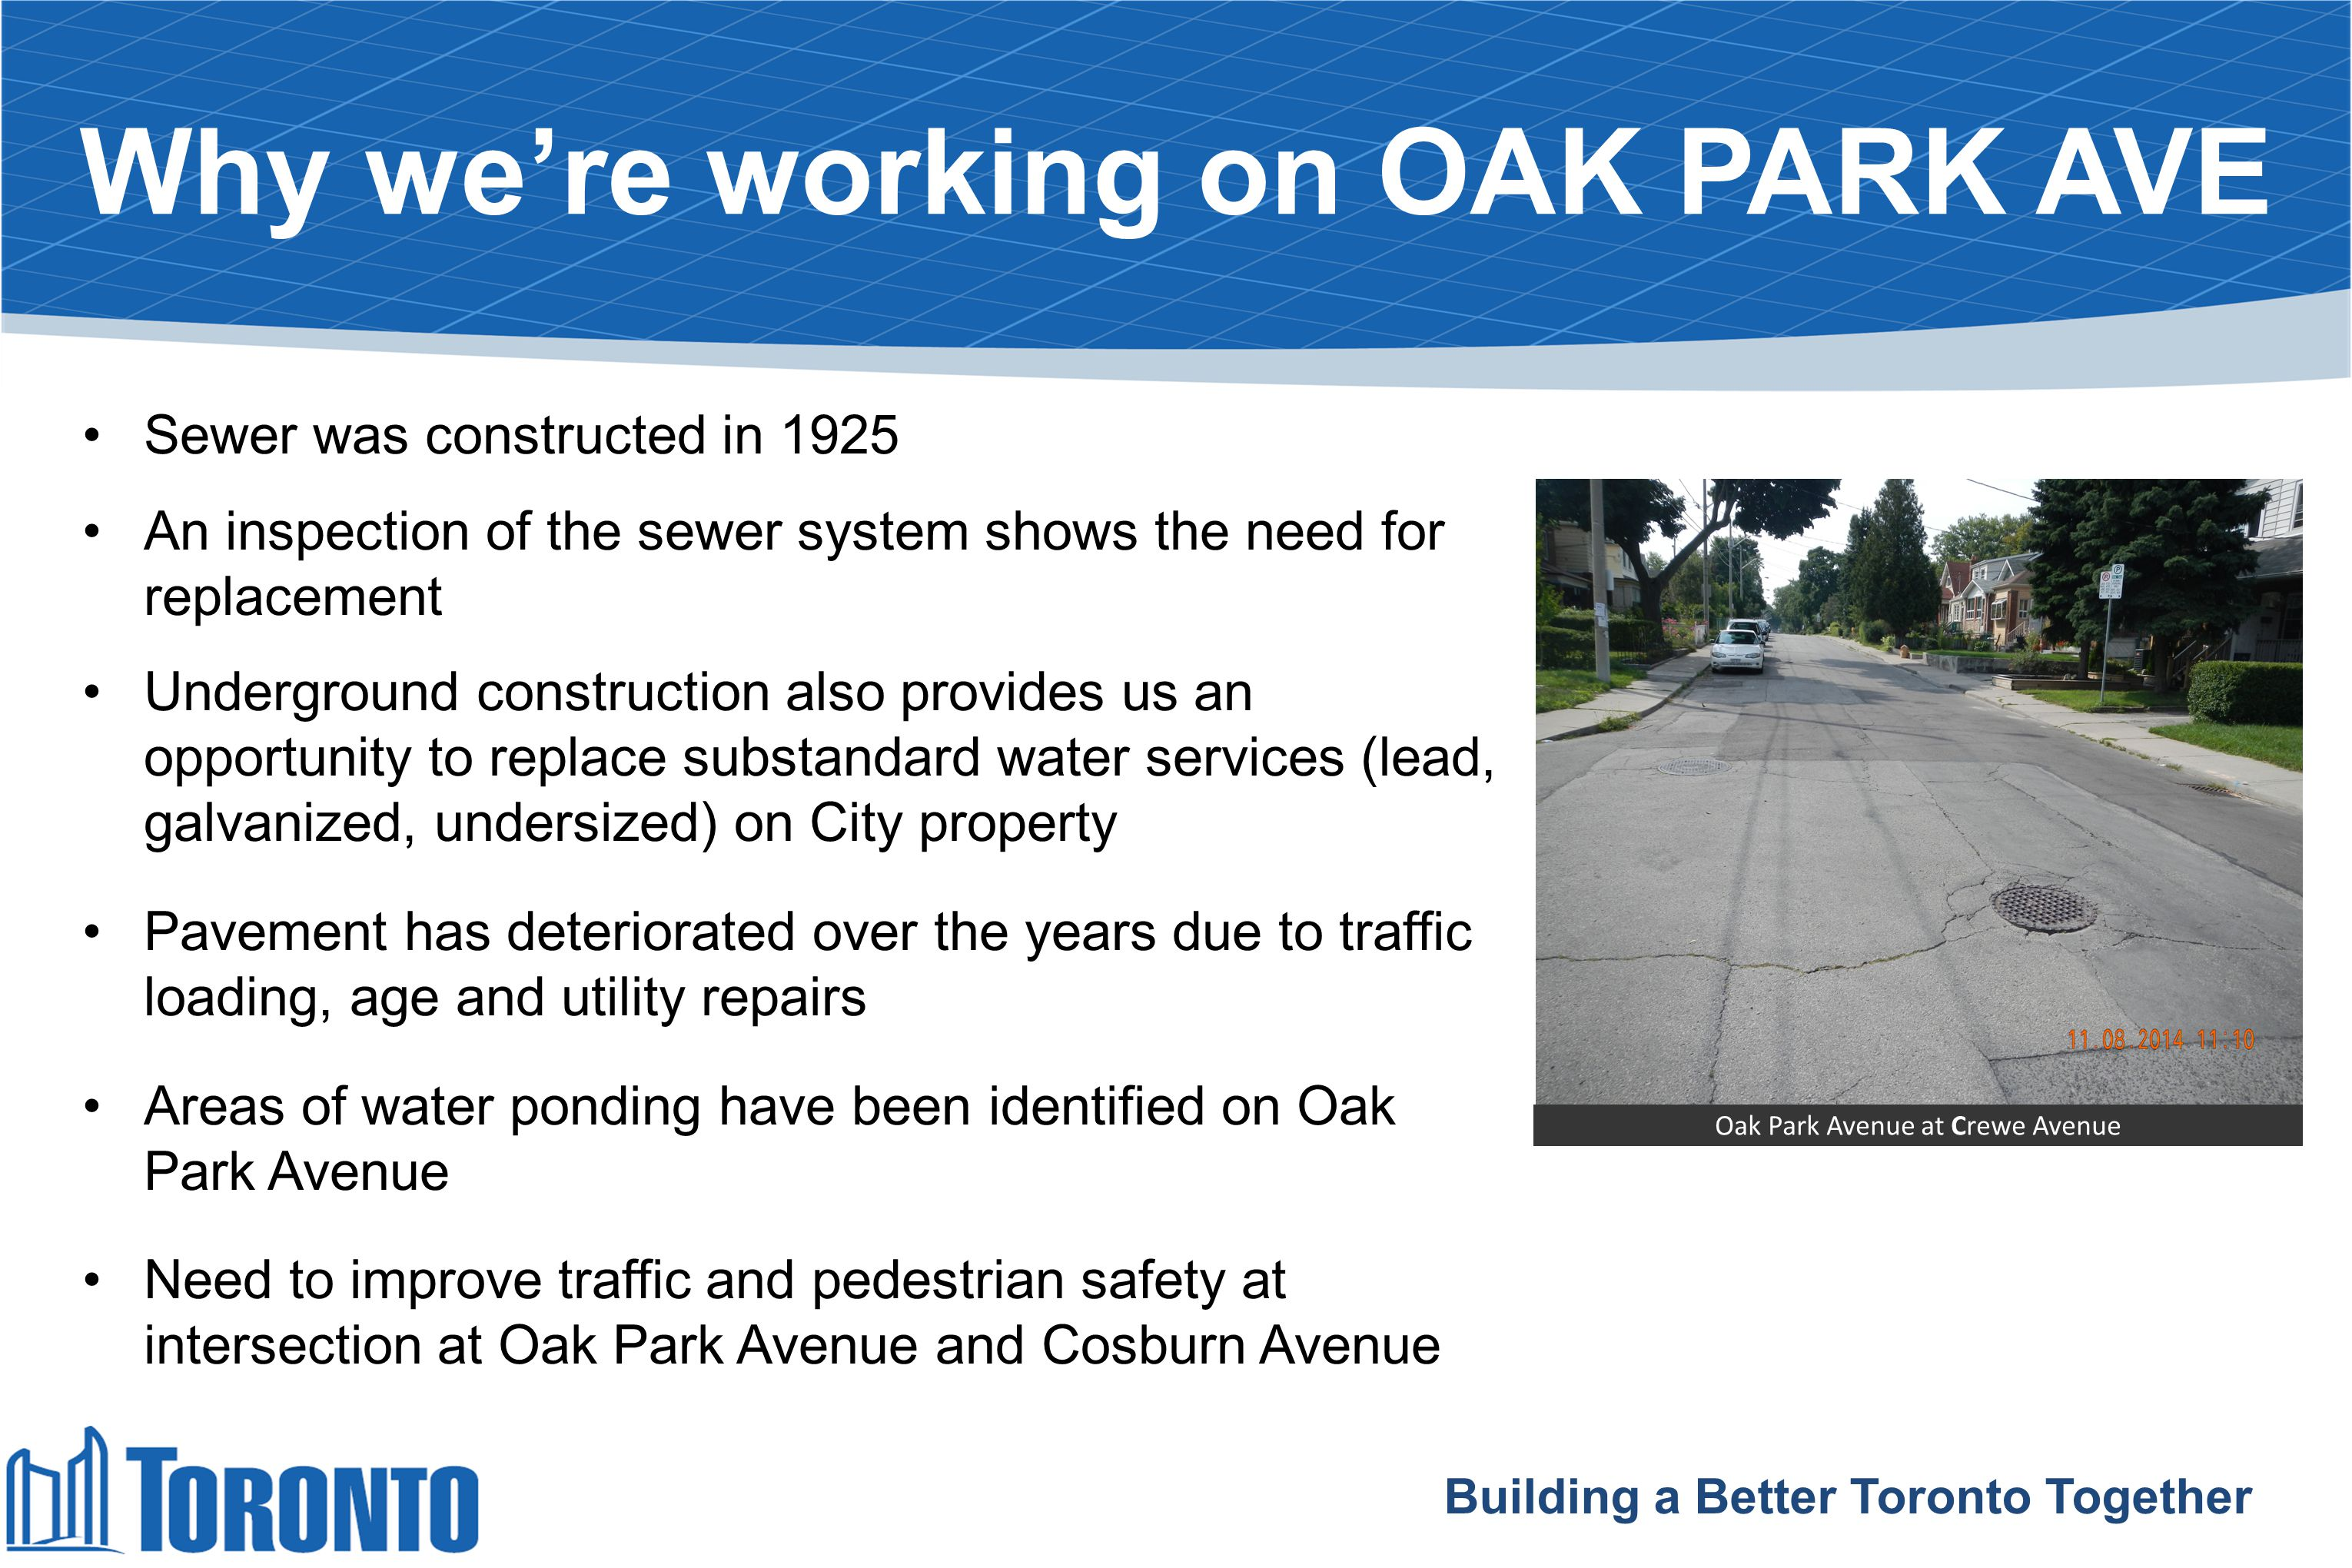 What's happening on OAK PARK AVENUE City's contractor will: replace sanitary/combined sewer from Danforth Avenue to 75 metres south of Everett Crescent replace City-owned portion of any substandard water services resurface road from Danforth Avenue to Cosburn Avenue improve intersection at Oak Park Avenue and Cosburn Avenue Building a Better Toronto Together